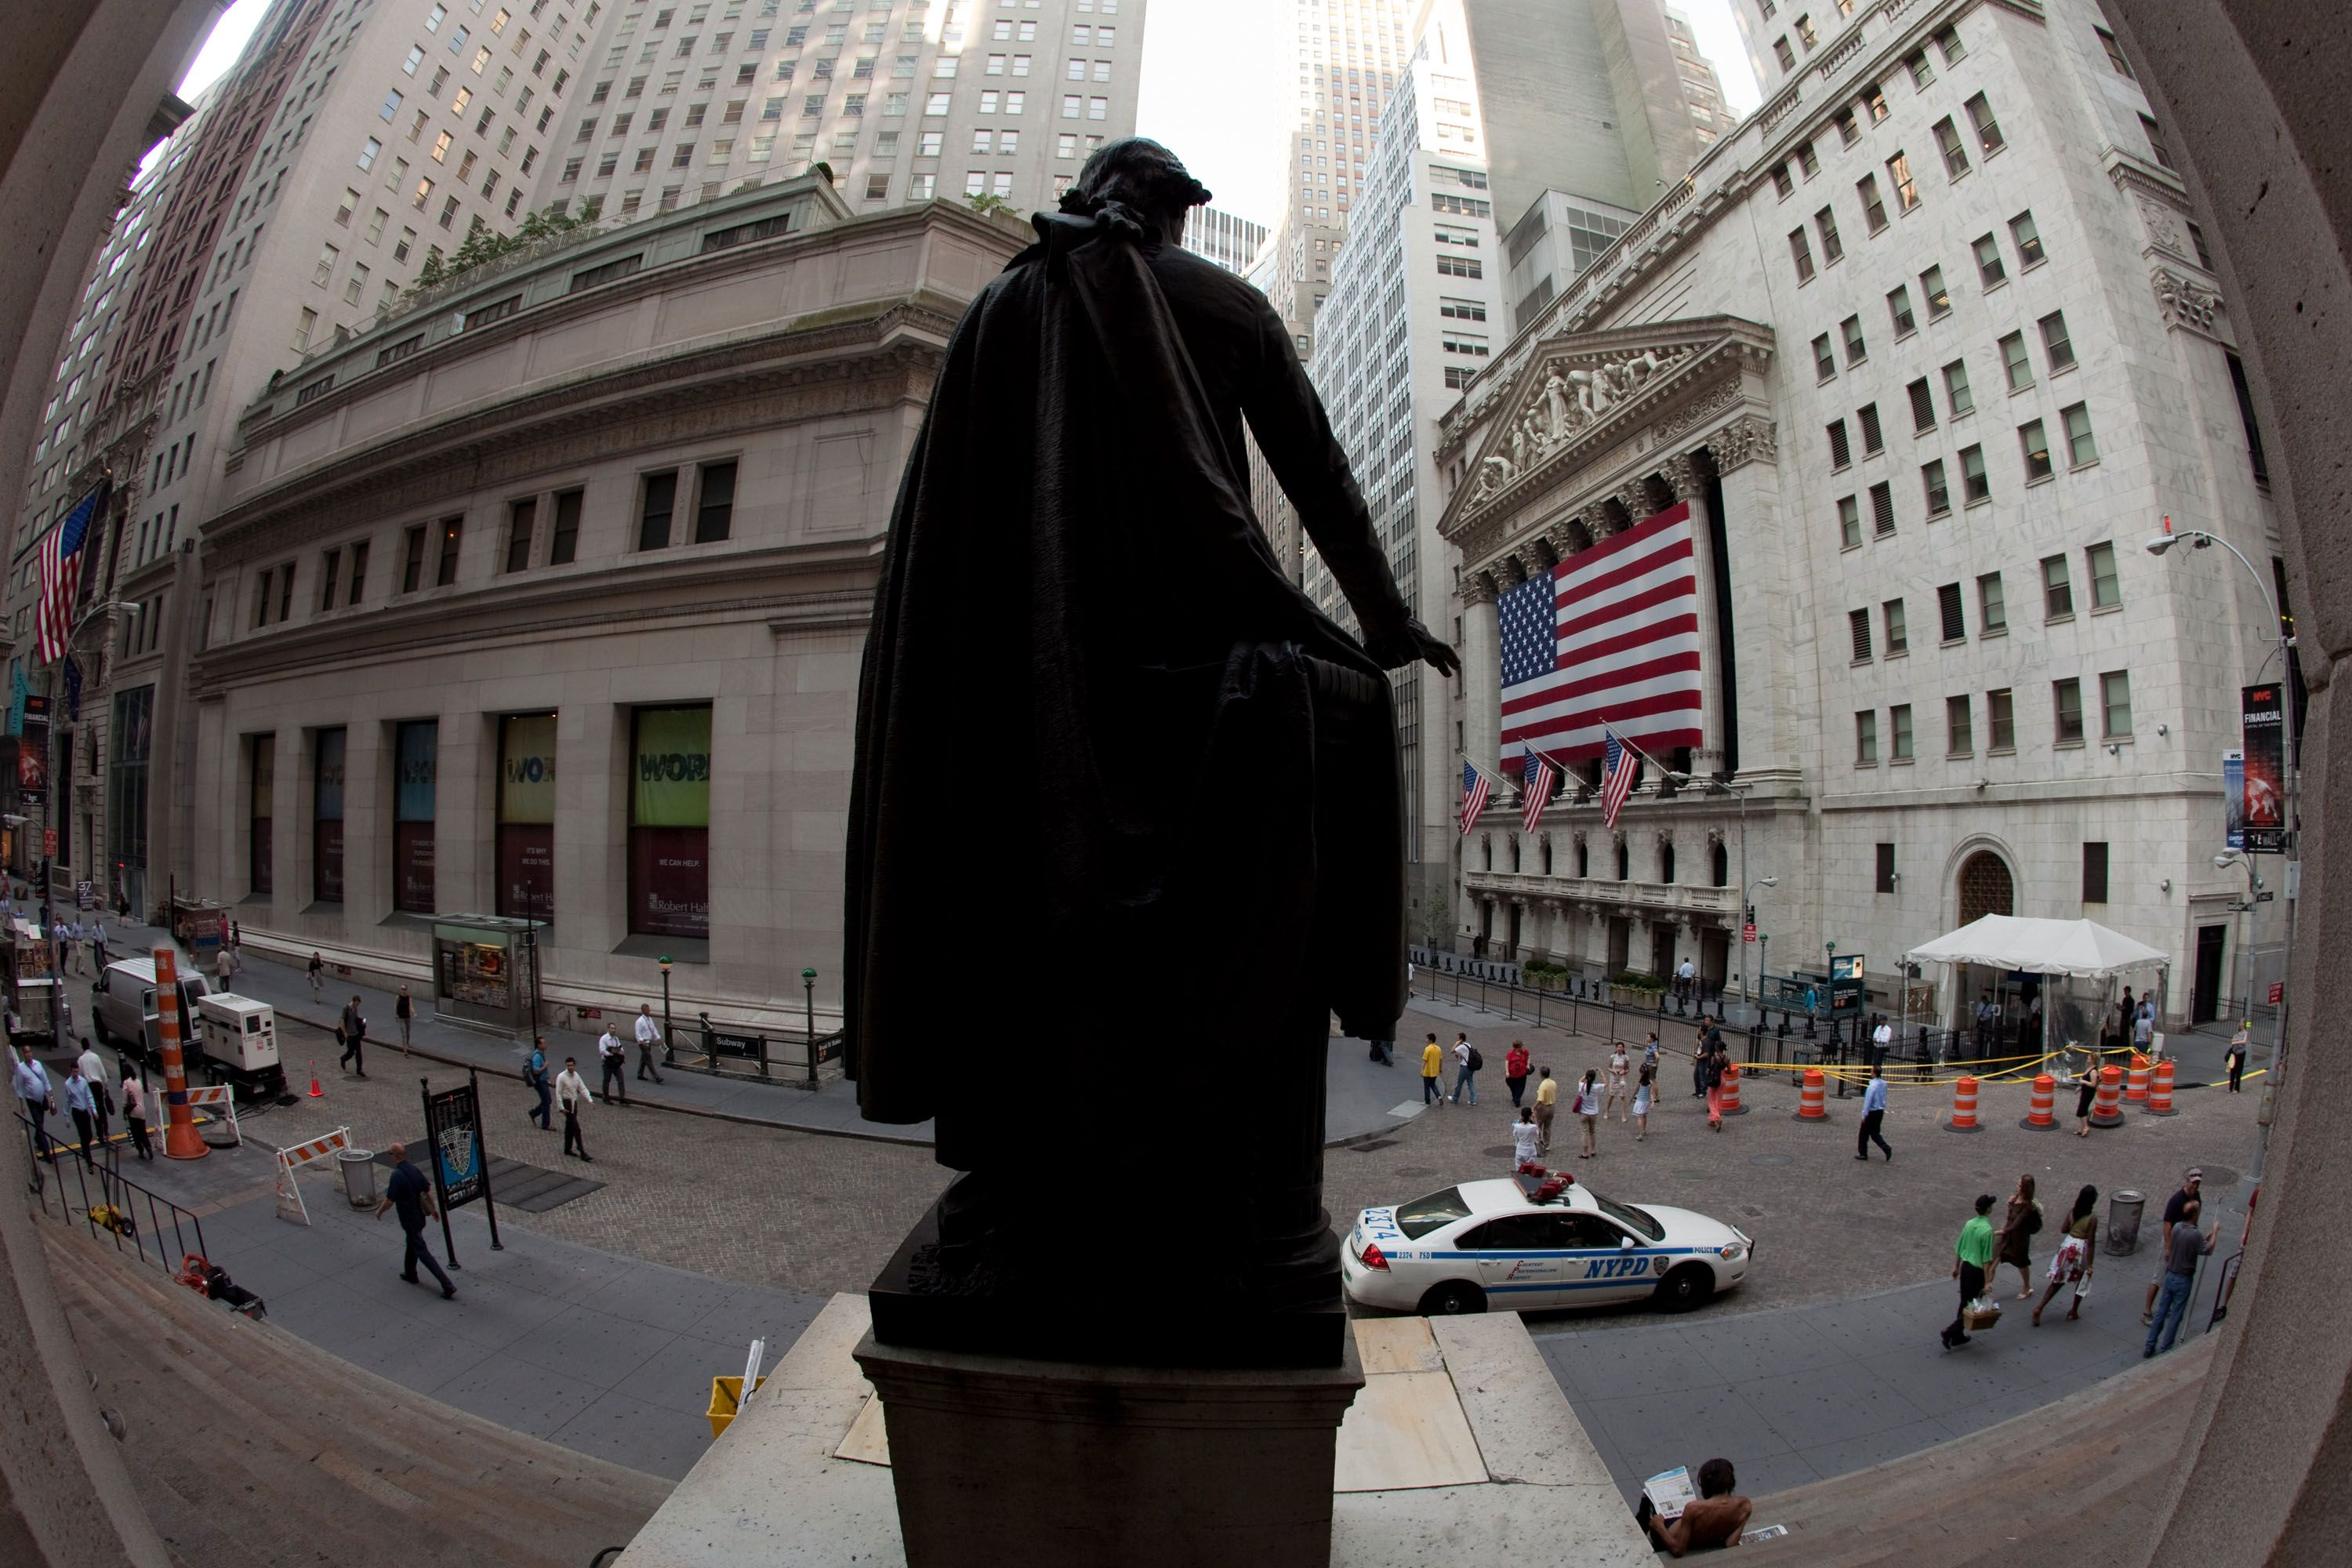 Behind a huge US flag covering the colonnade, the New York Stock Exchange facade is watched over by a statue of George Washington on Wall Street.